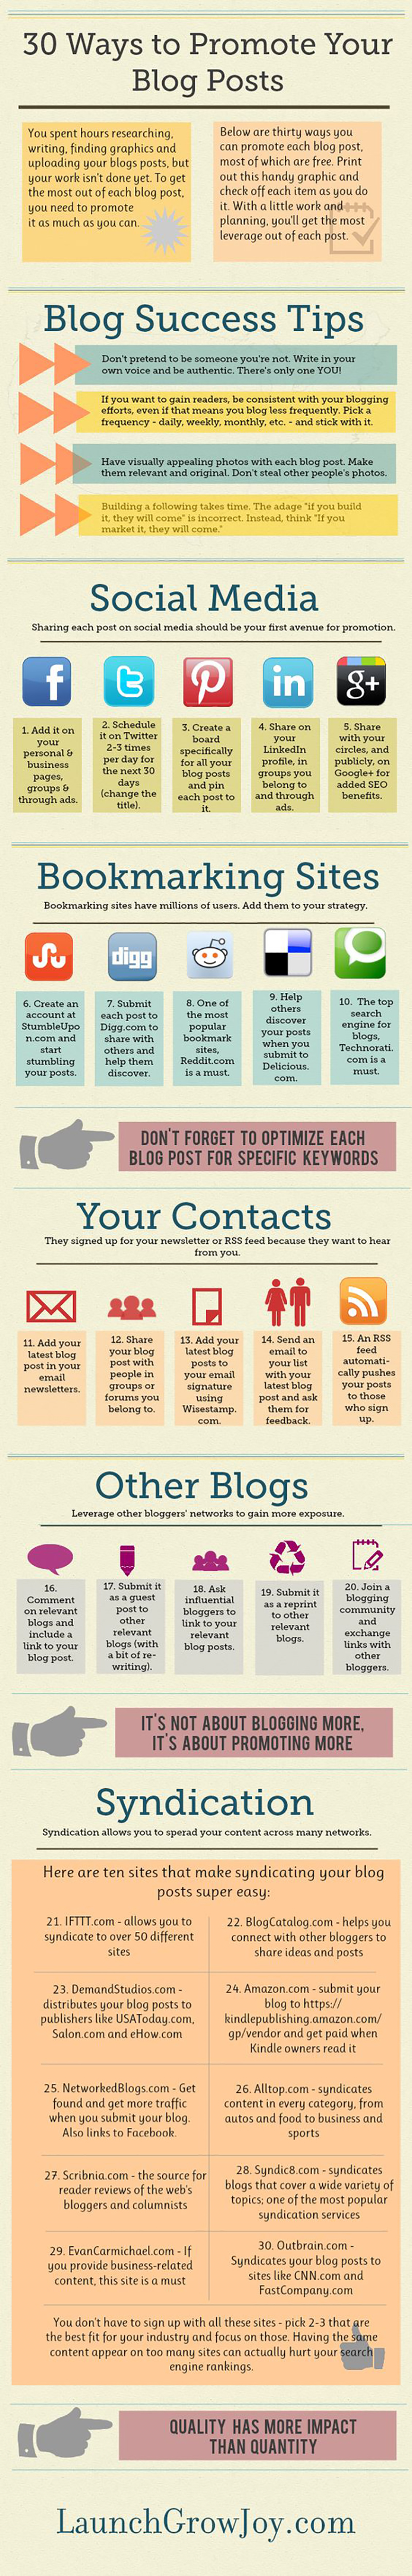 30-ways-to-promote-your-blog-posts-infographic_800pxw